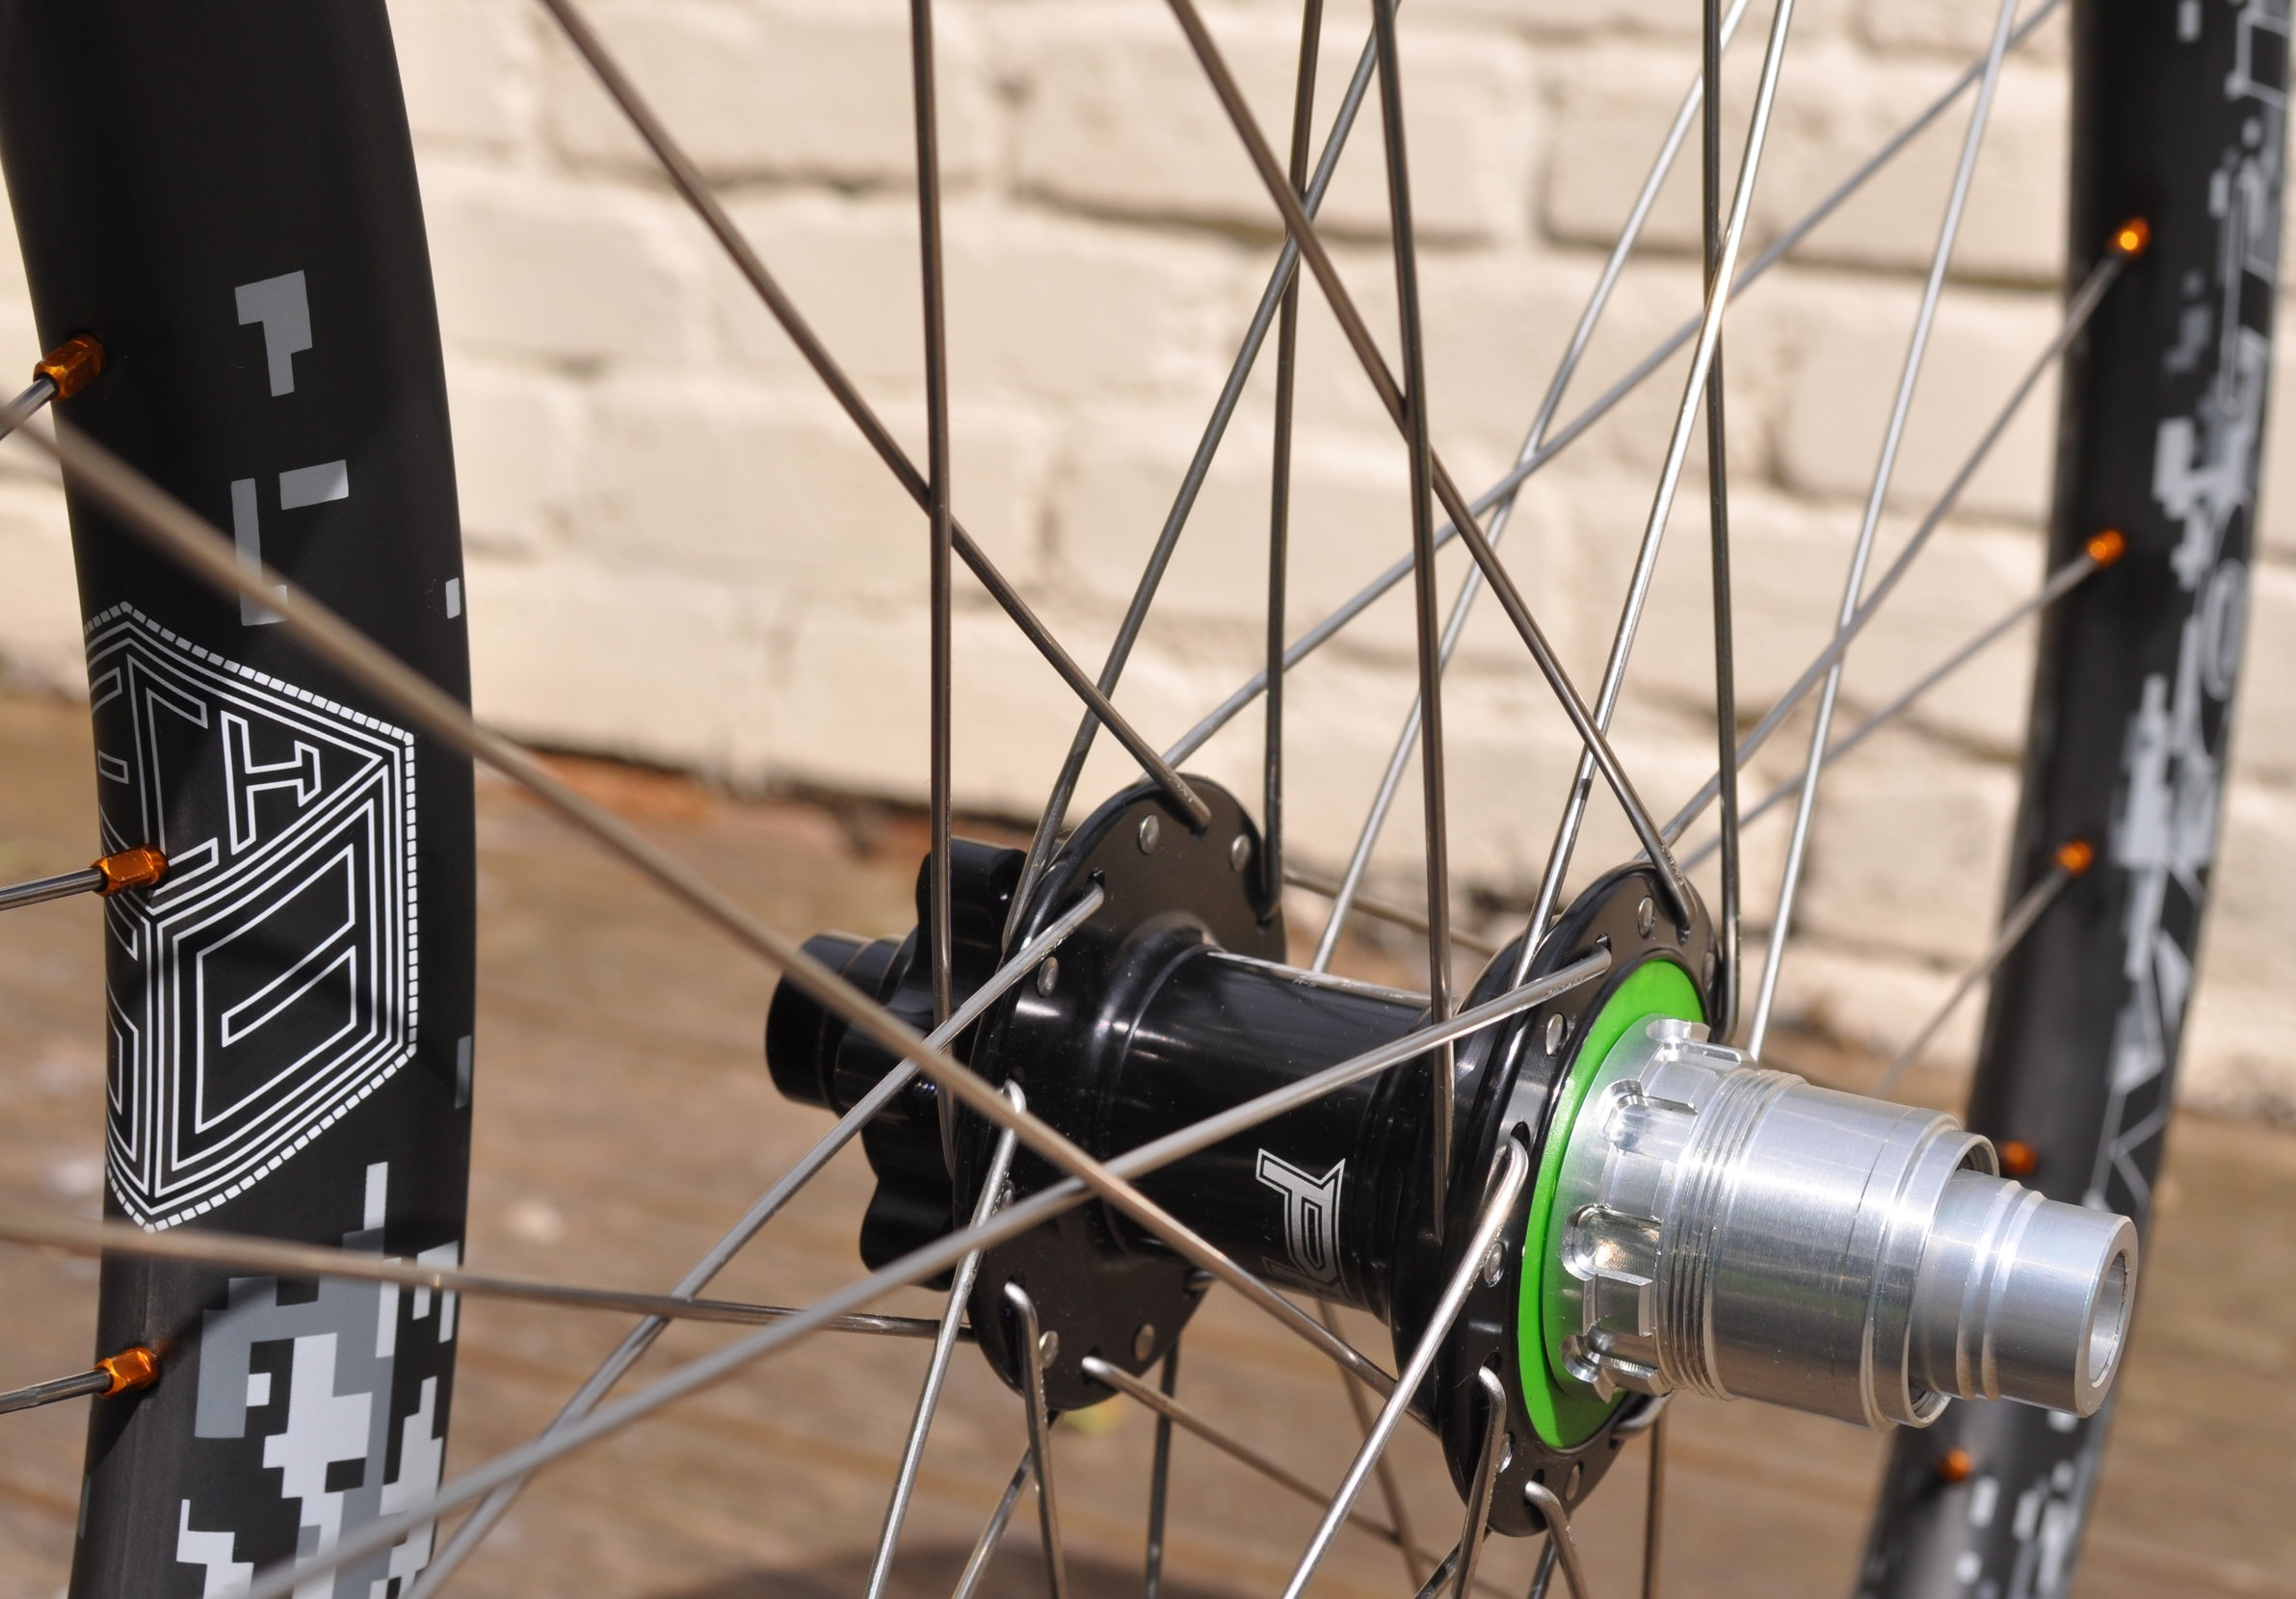 WHEEL BUILDING - Hand built wheels start at £30Spokes are individually cut and rolled to length. A huge range of options are available including Sapim's fantastic D-light triple butted spokes and a variety of nipples in different colours and materials.